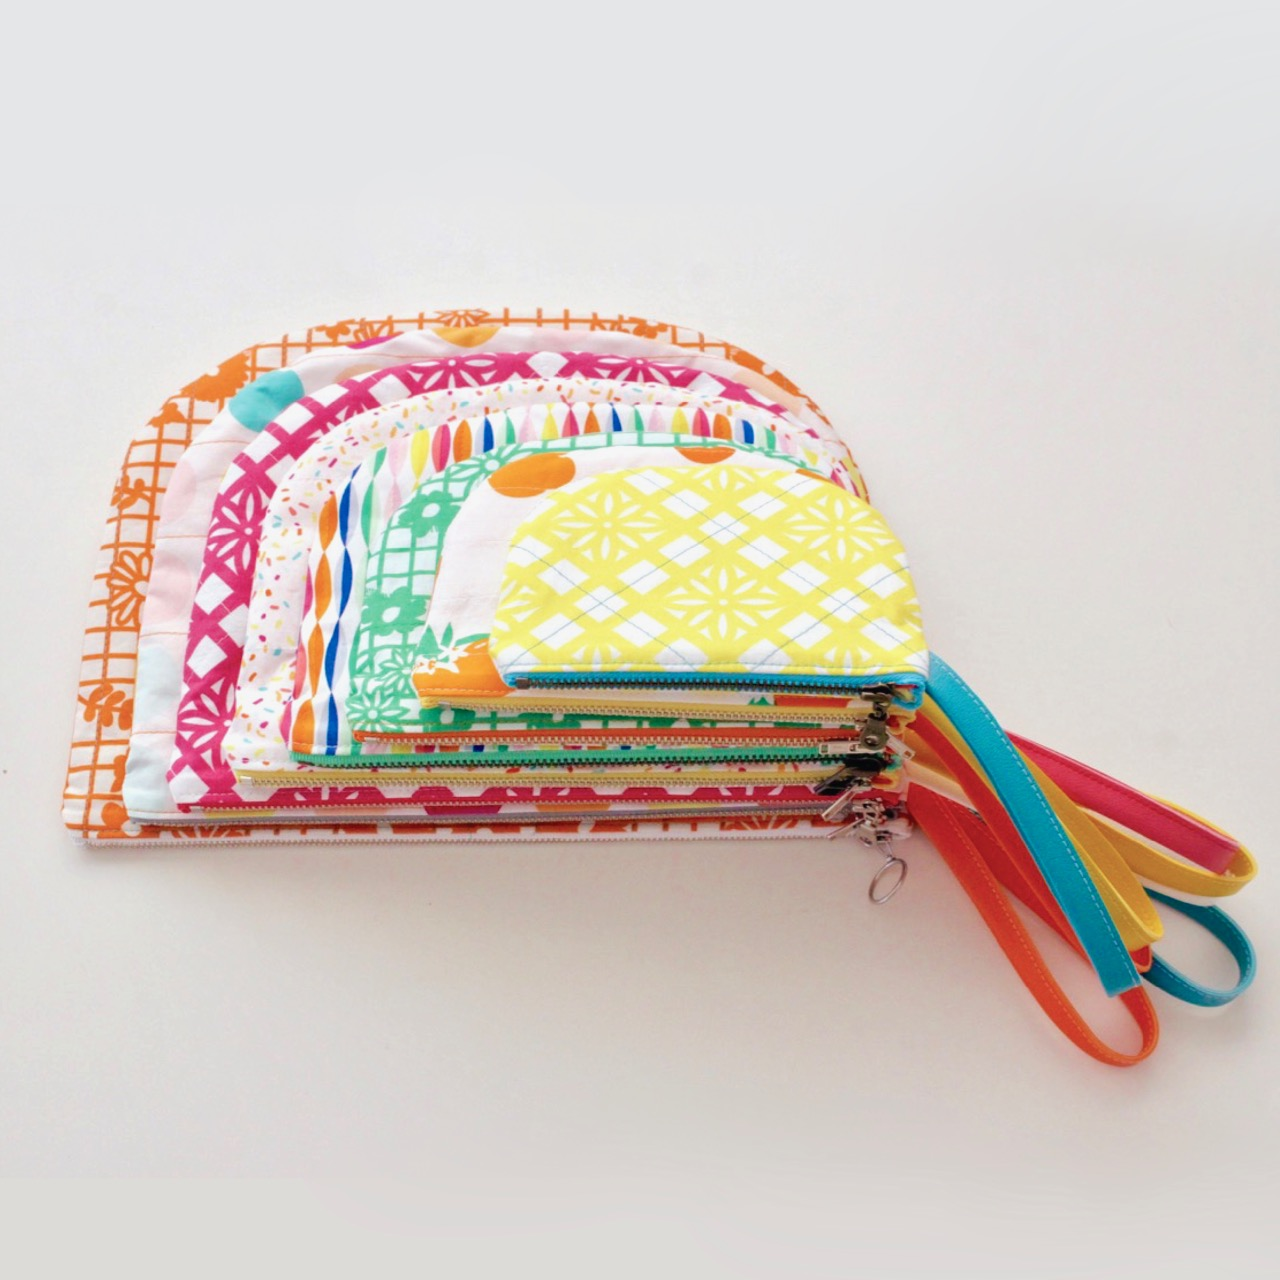 Parfait Pouch sewing pattern by MADE Everyday | Art Gallery Fabrics designed by Dana Willard